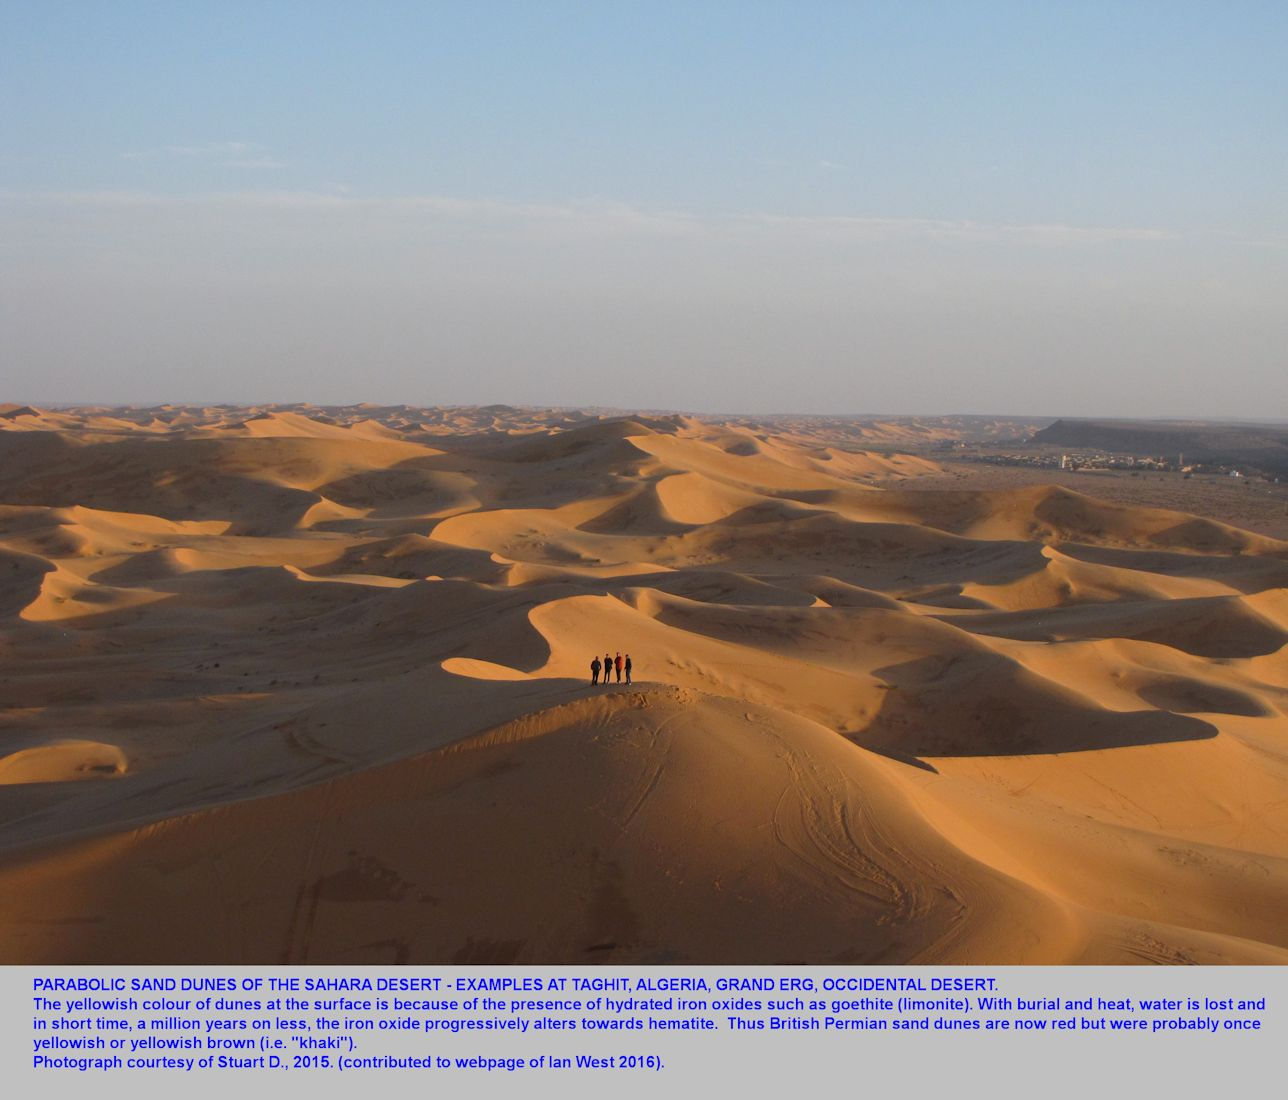 Parabolic sand dunes at Taghit, Algeria, in the Grand Erg of the Oriental Desert, 2015